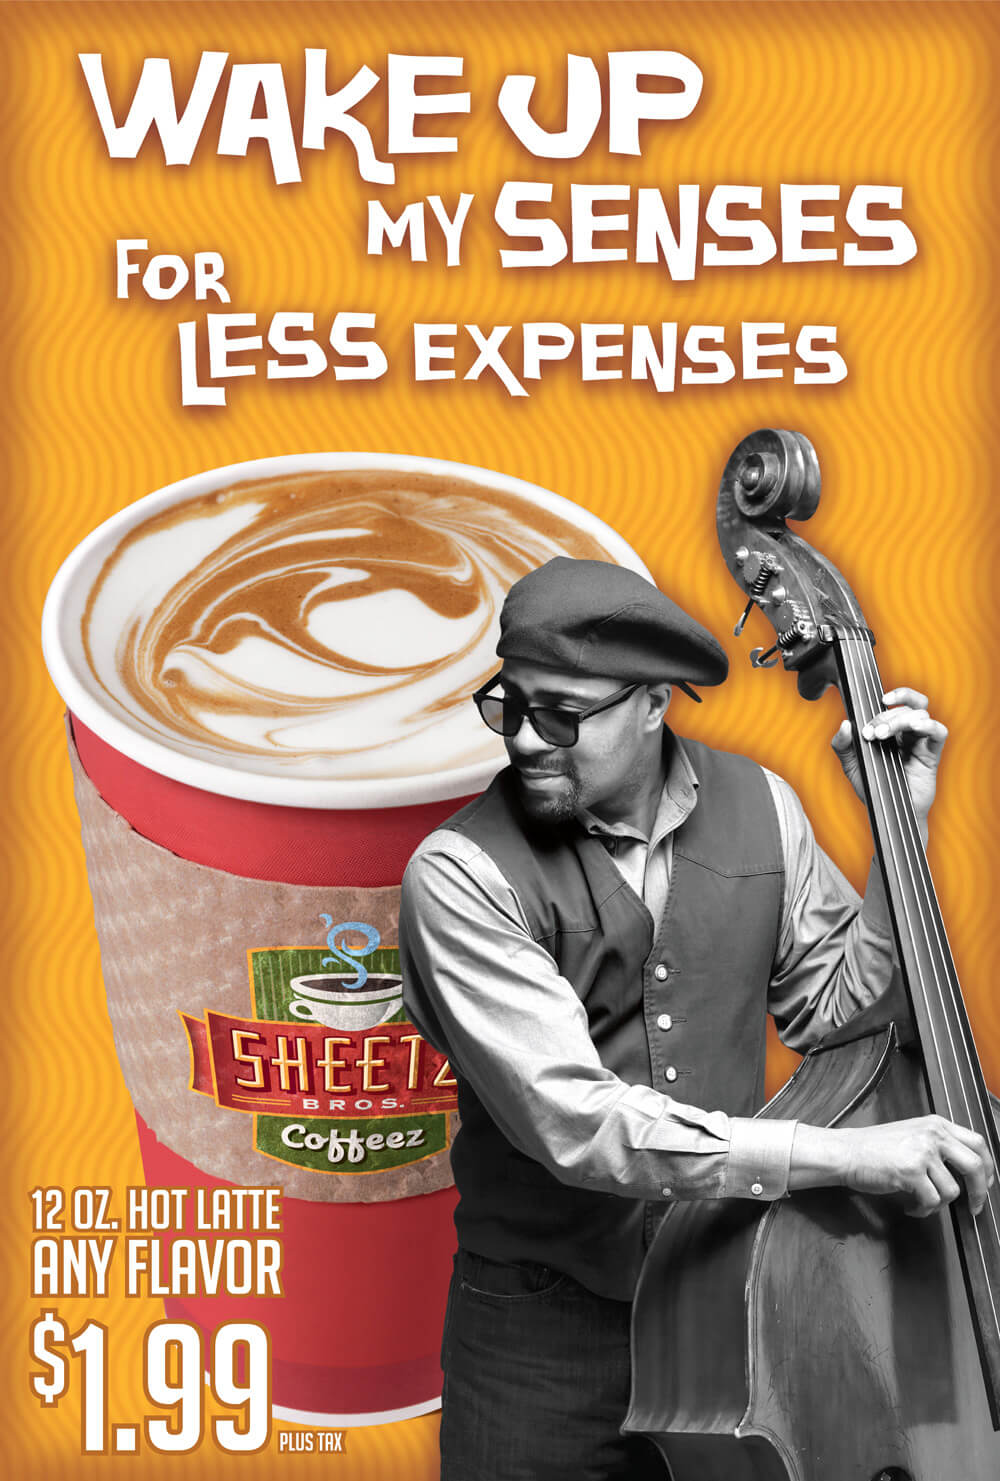 P.O.S. advertisement for Sheetz. Man playing stand up bass next to a latte. text reads: Wake up my senses for less expenses.